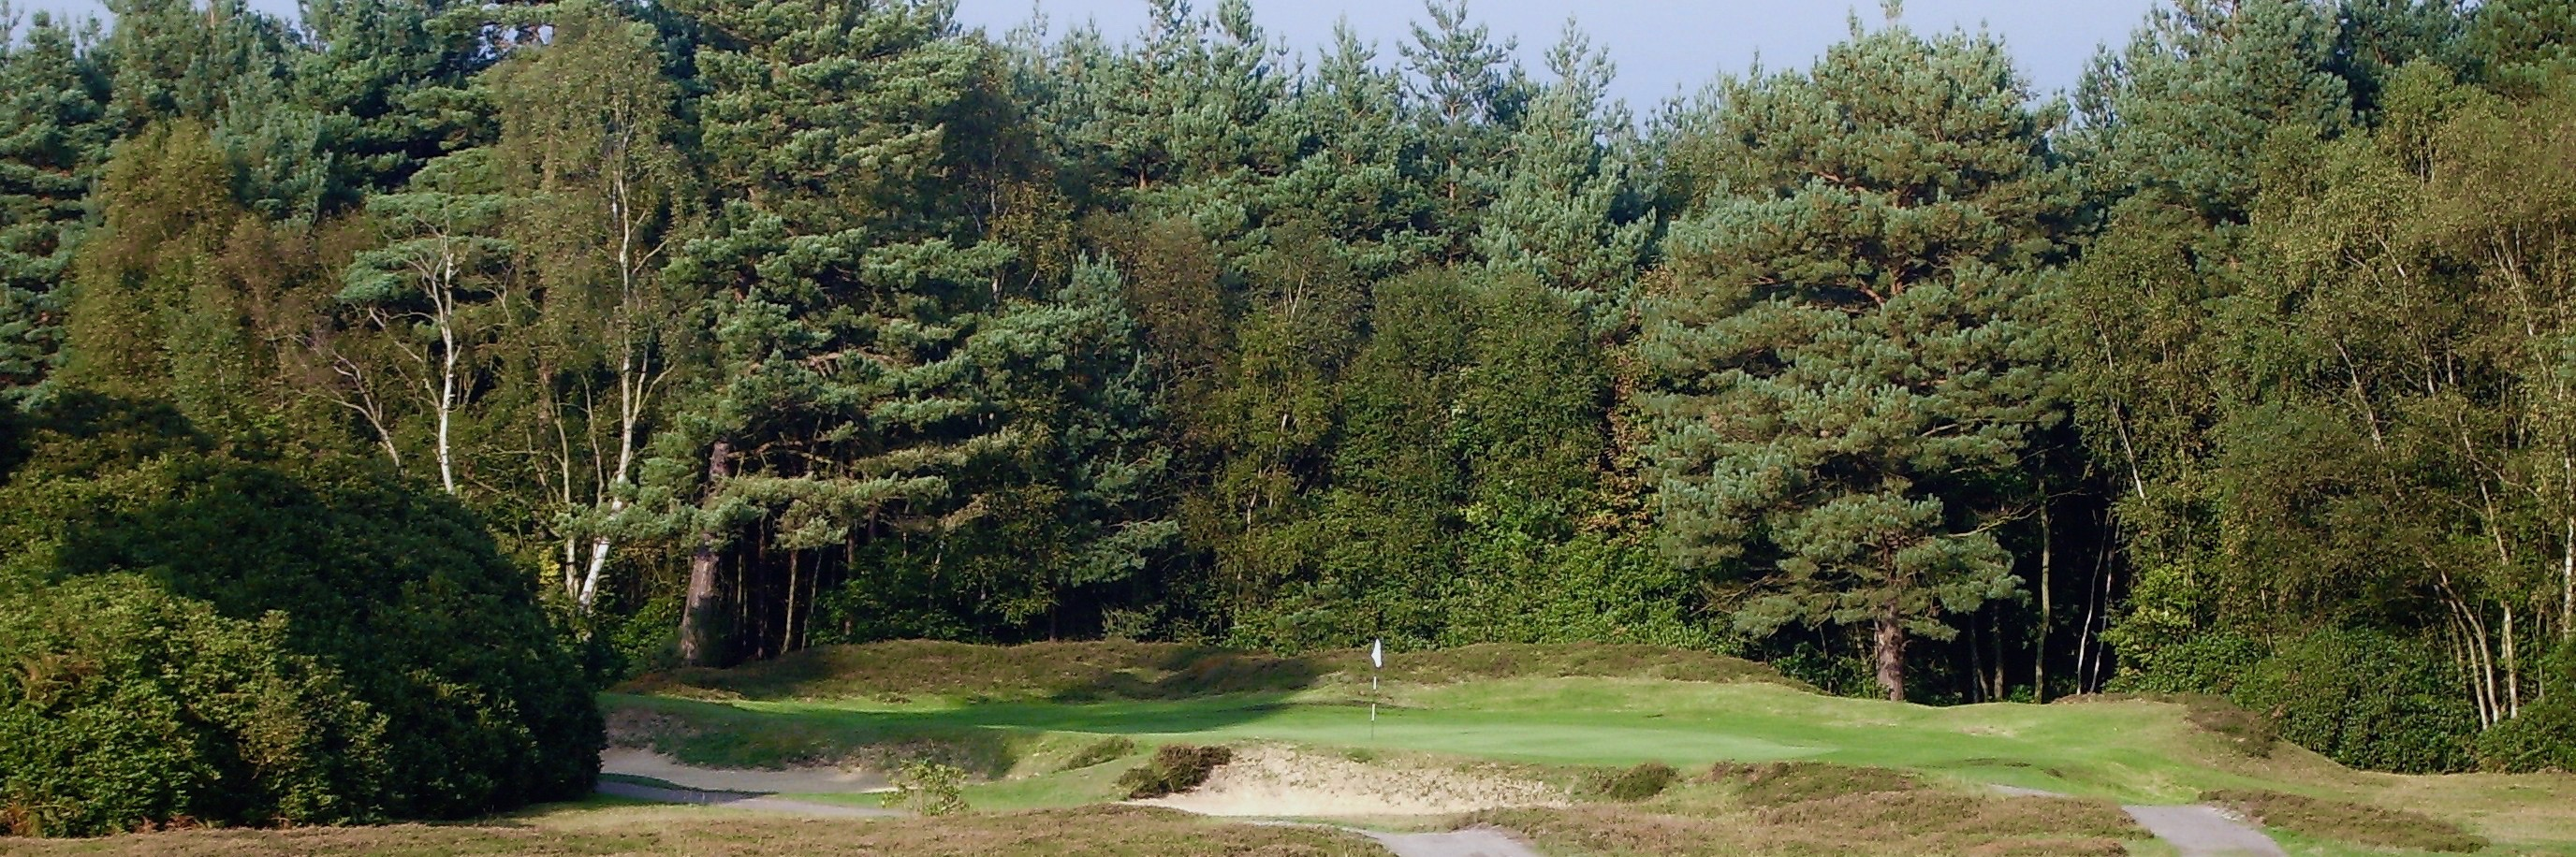 Classic Heathland golf course of Surrey by authentic golf